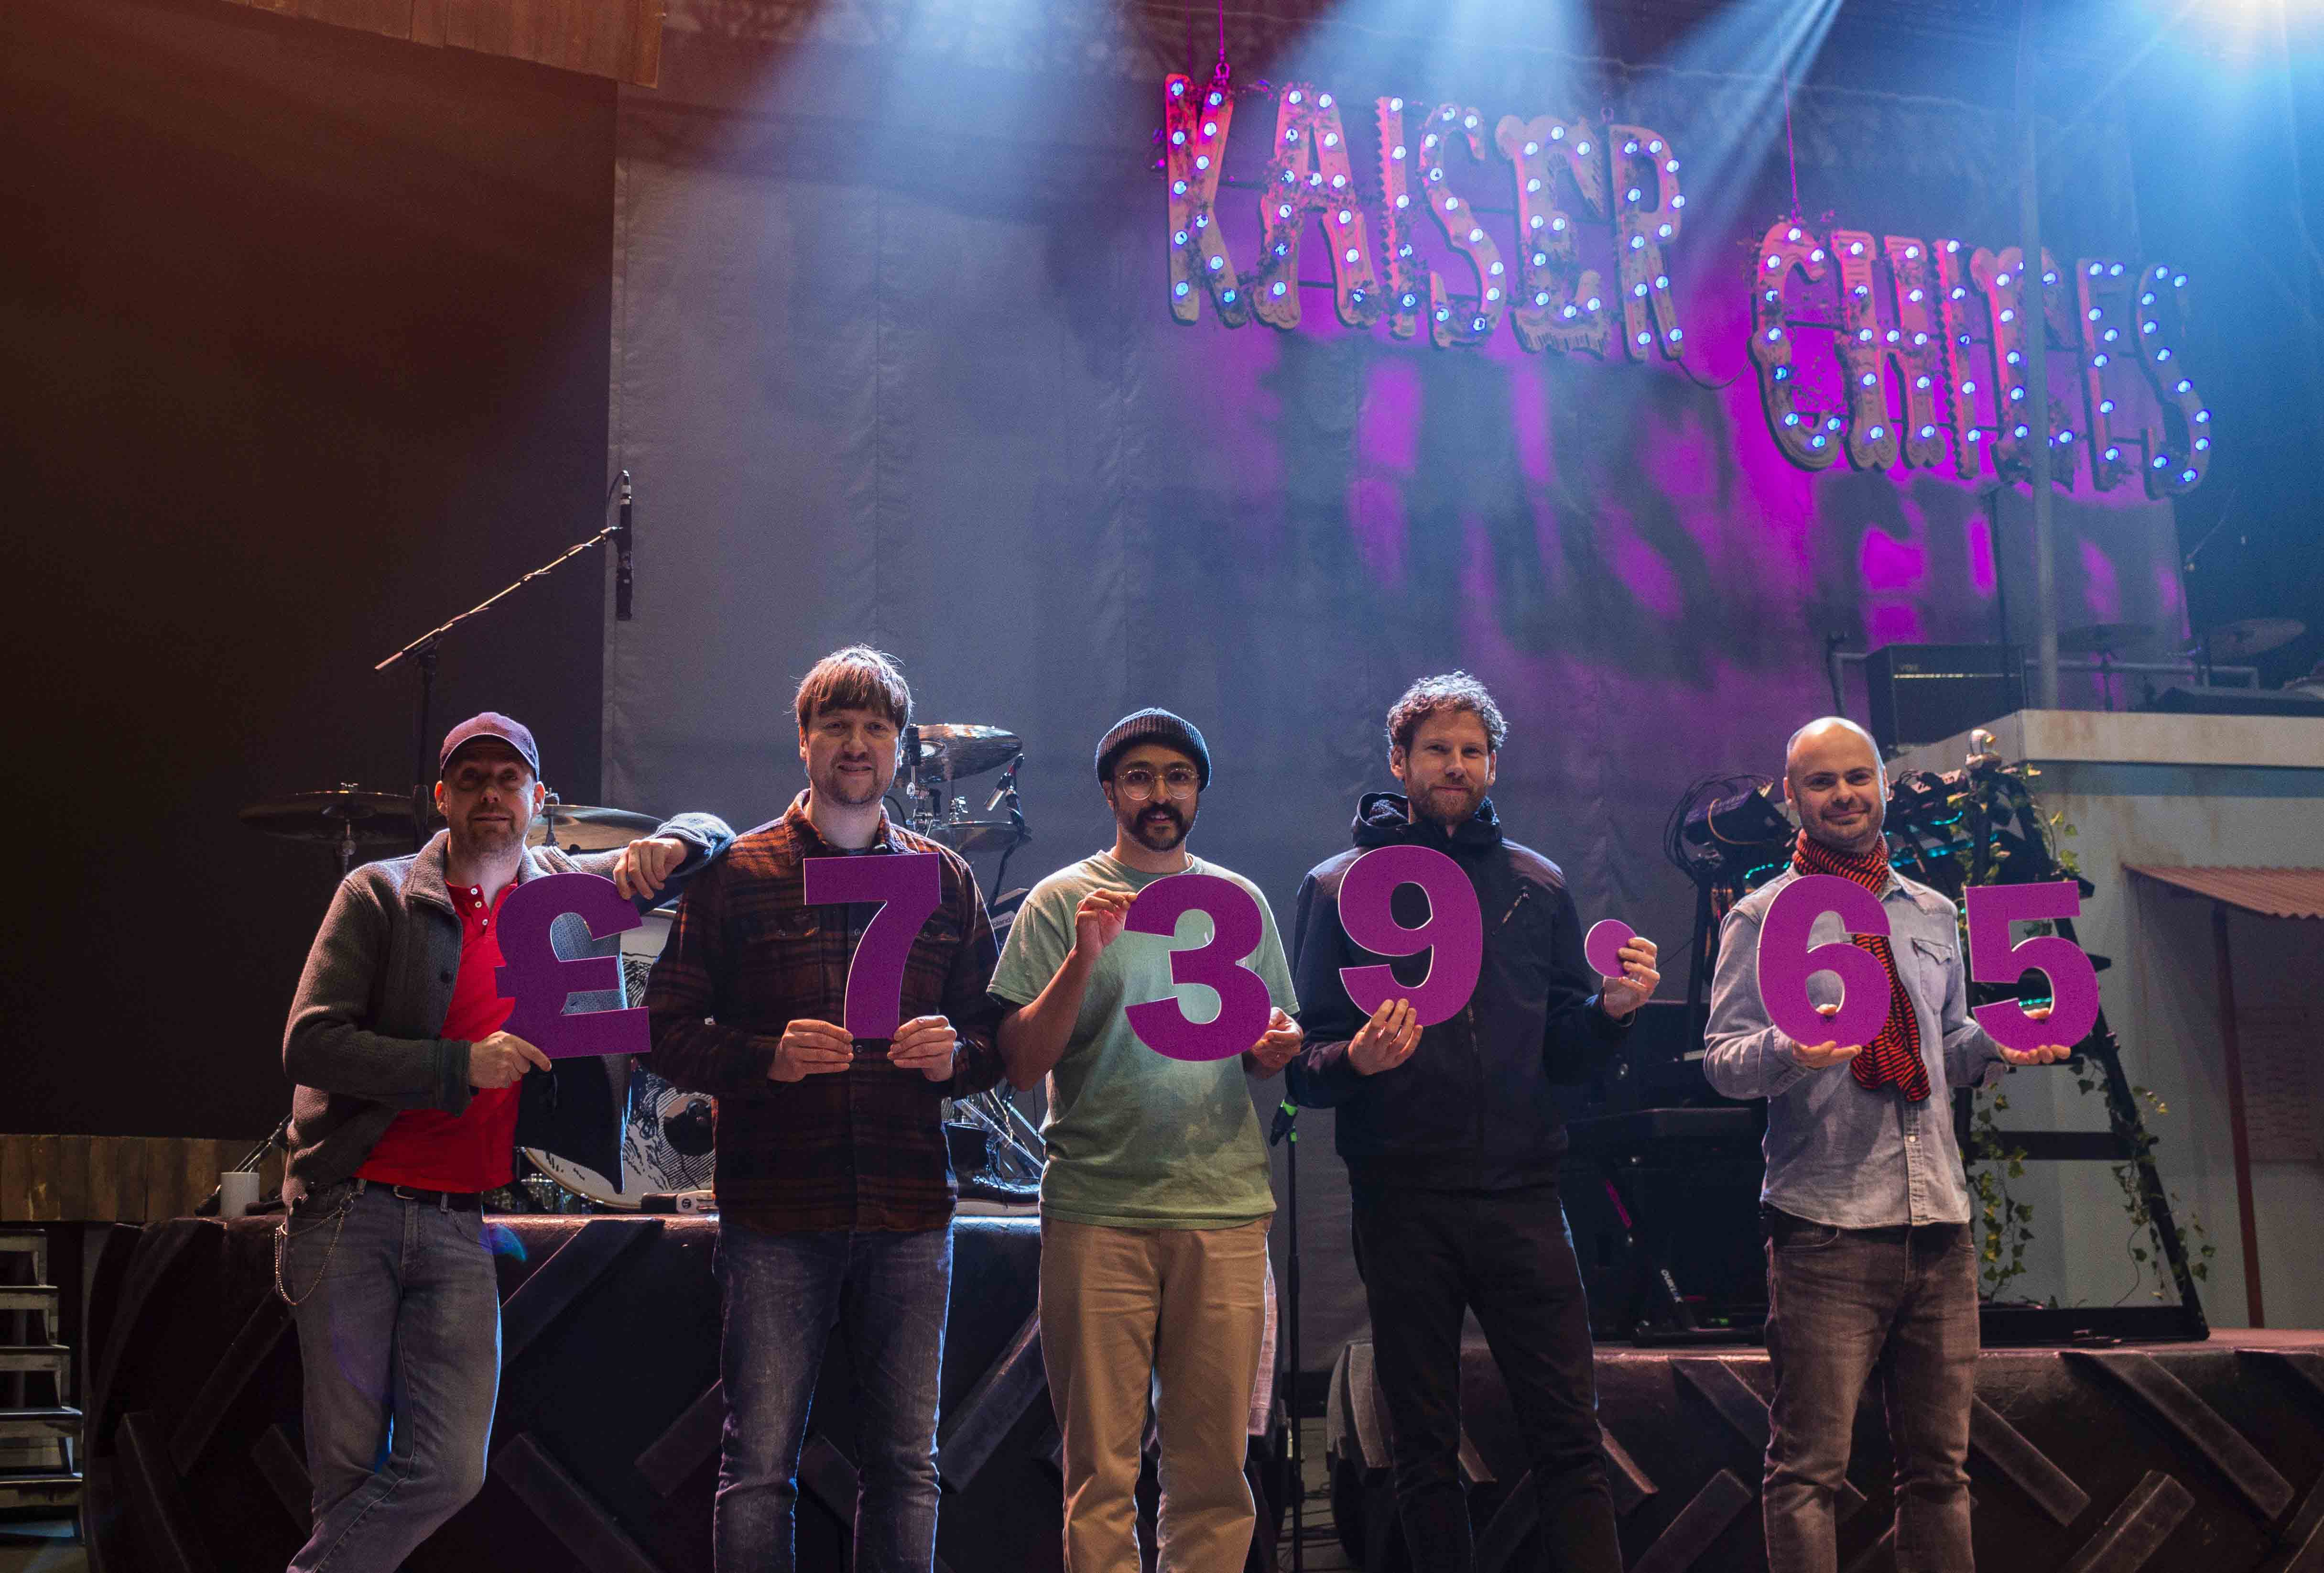 Kaiser Chiefs holding big purple numbers